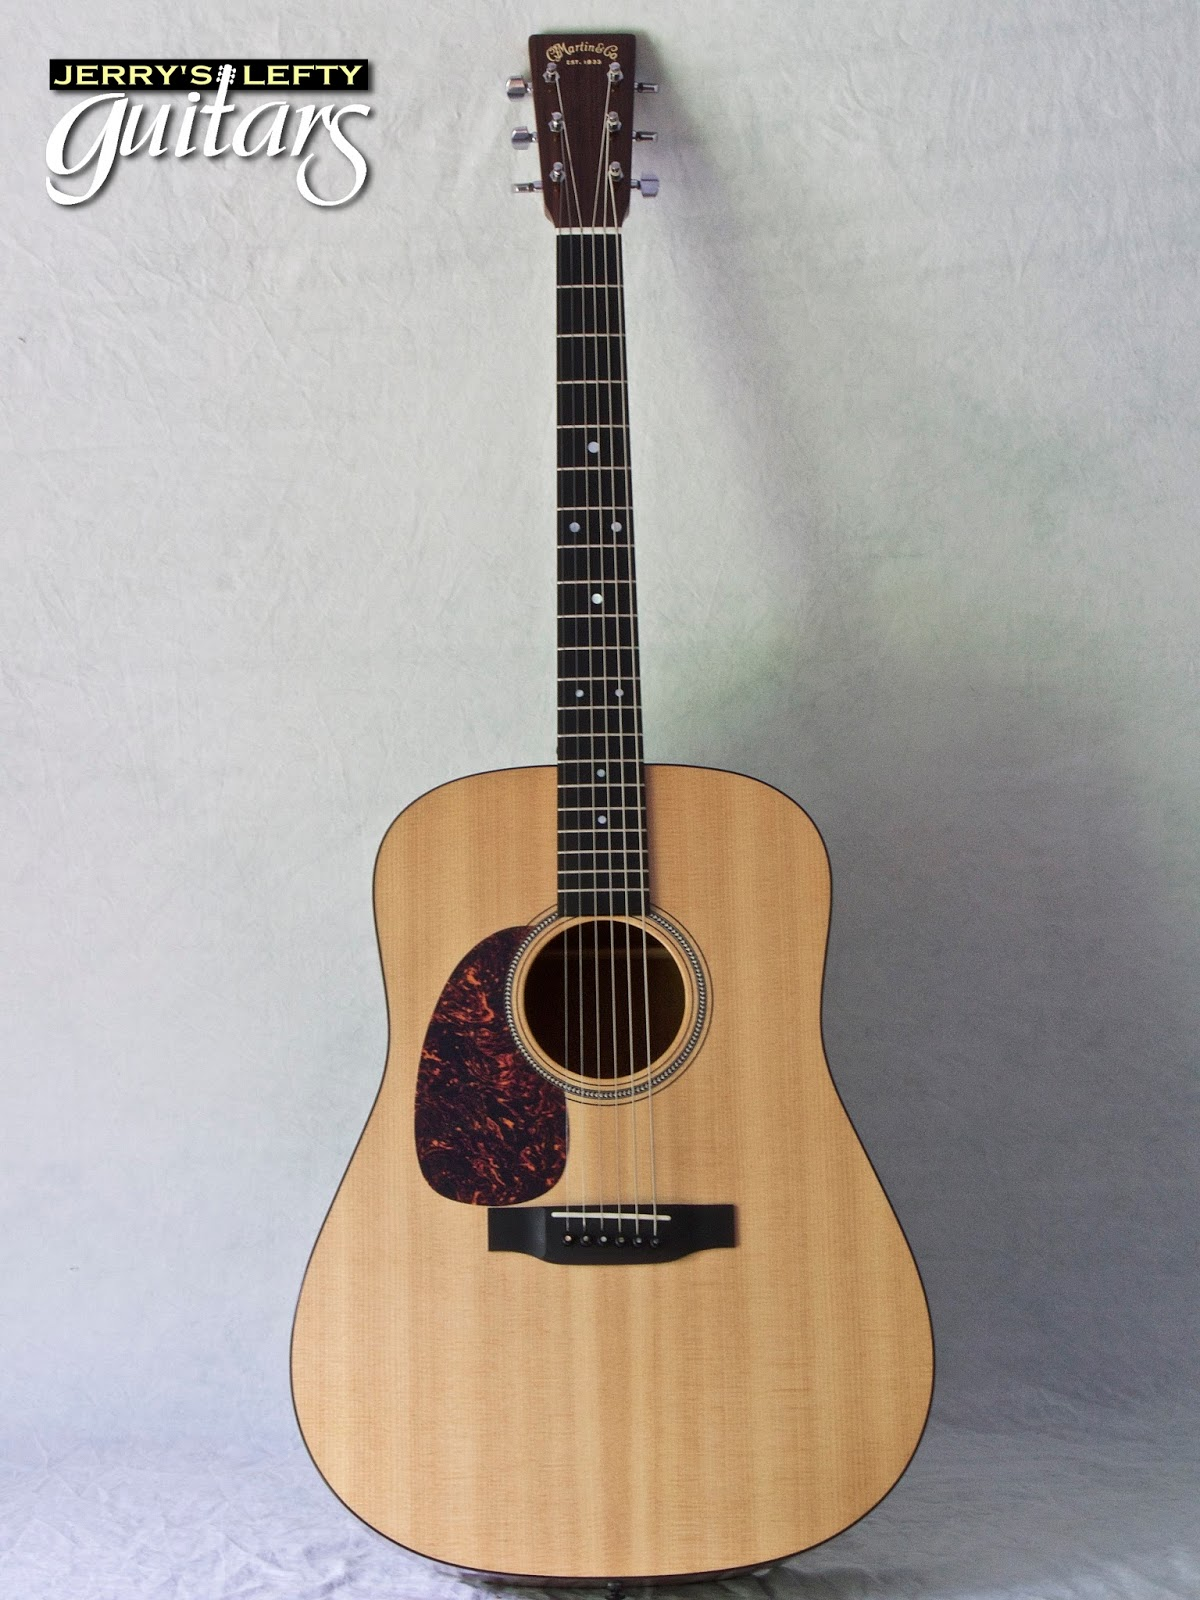 jerry 39 s lefty guitars newest guitar arrivals updated weekly martin d16gt used left handed. Black Bedroom Furniture Sets. Home Design Ideas